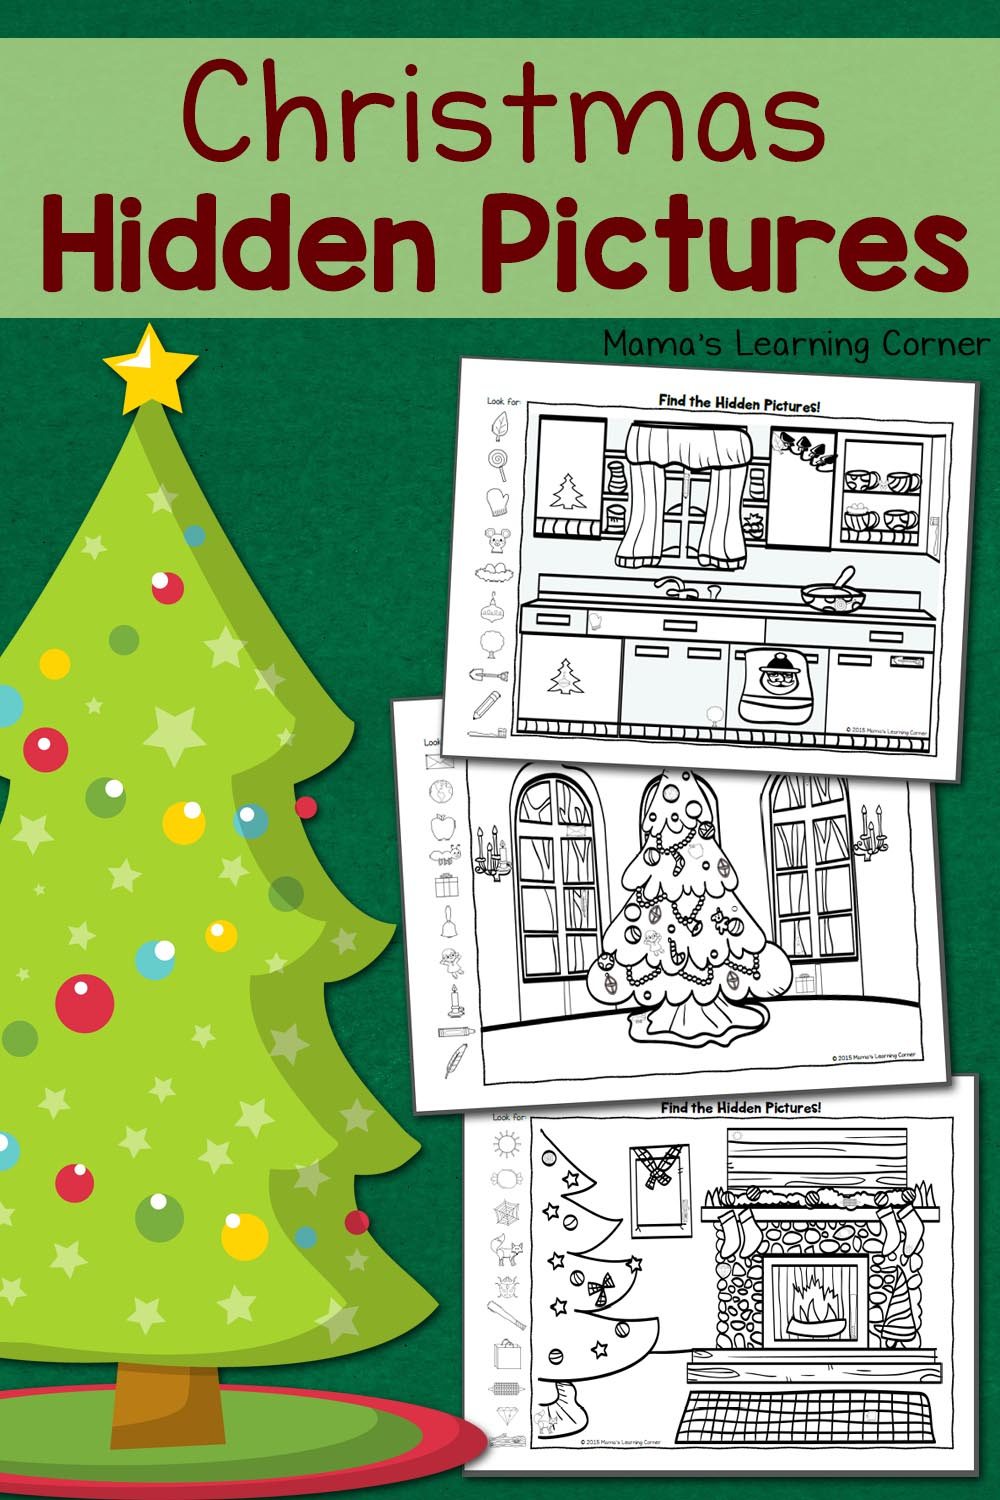 Christmas Hidden Pictures Worksheets - Mamas Learning Corner